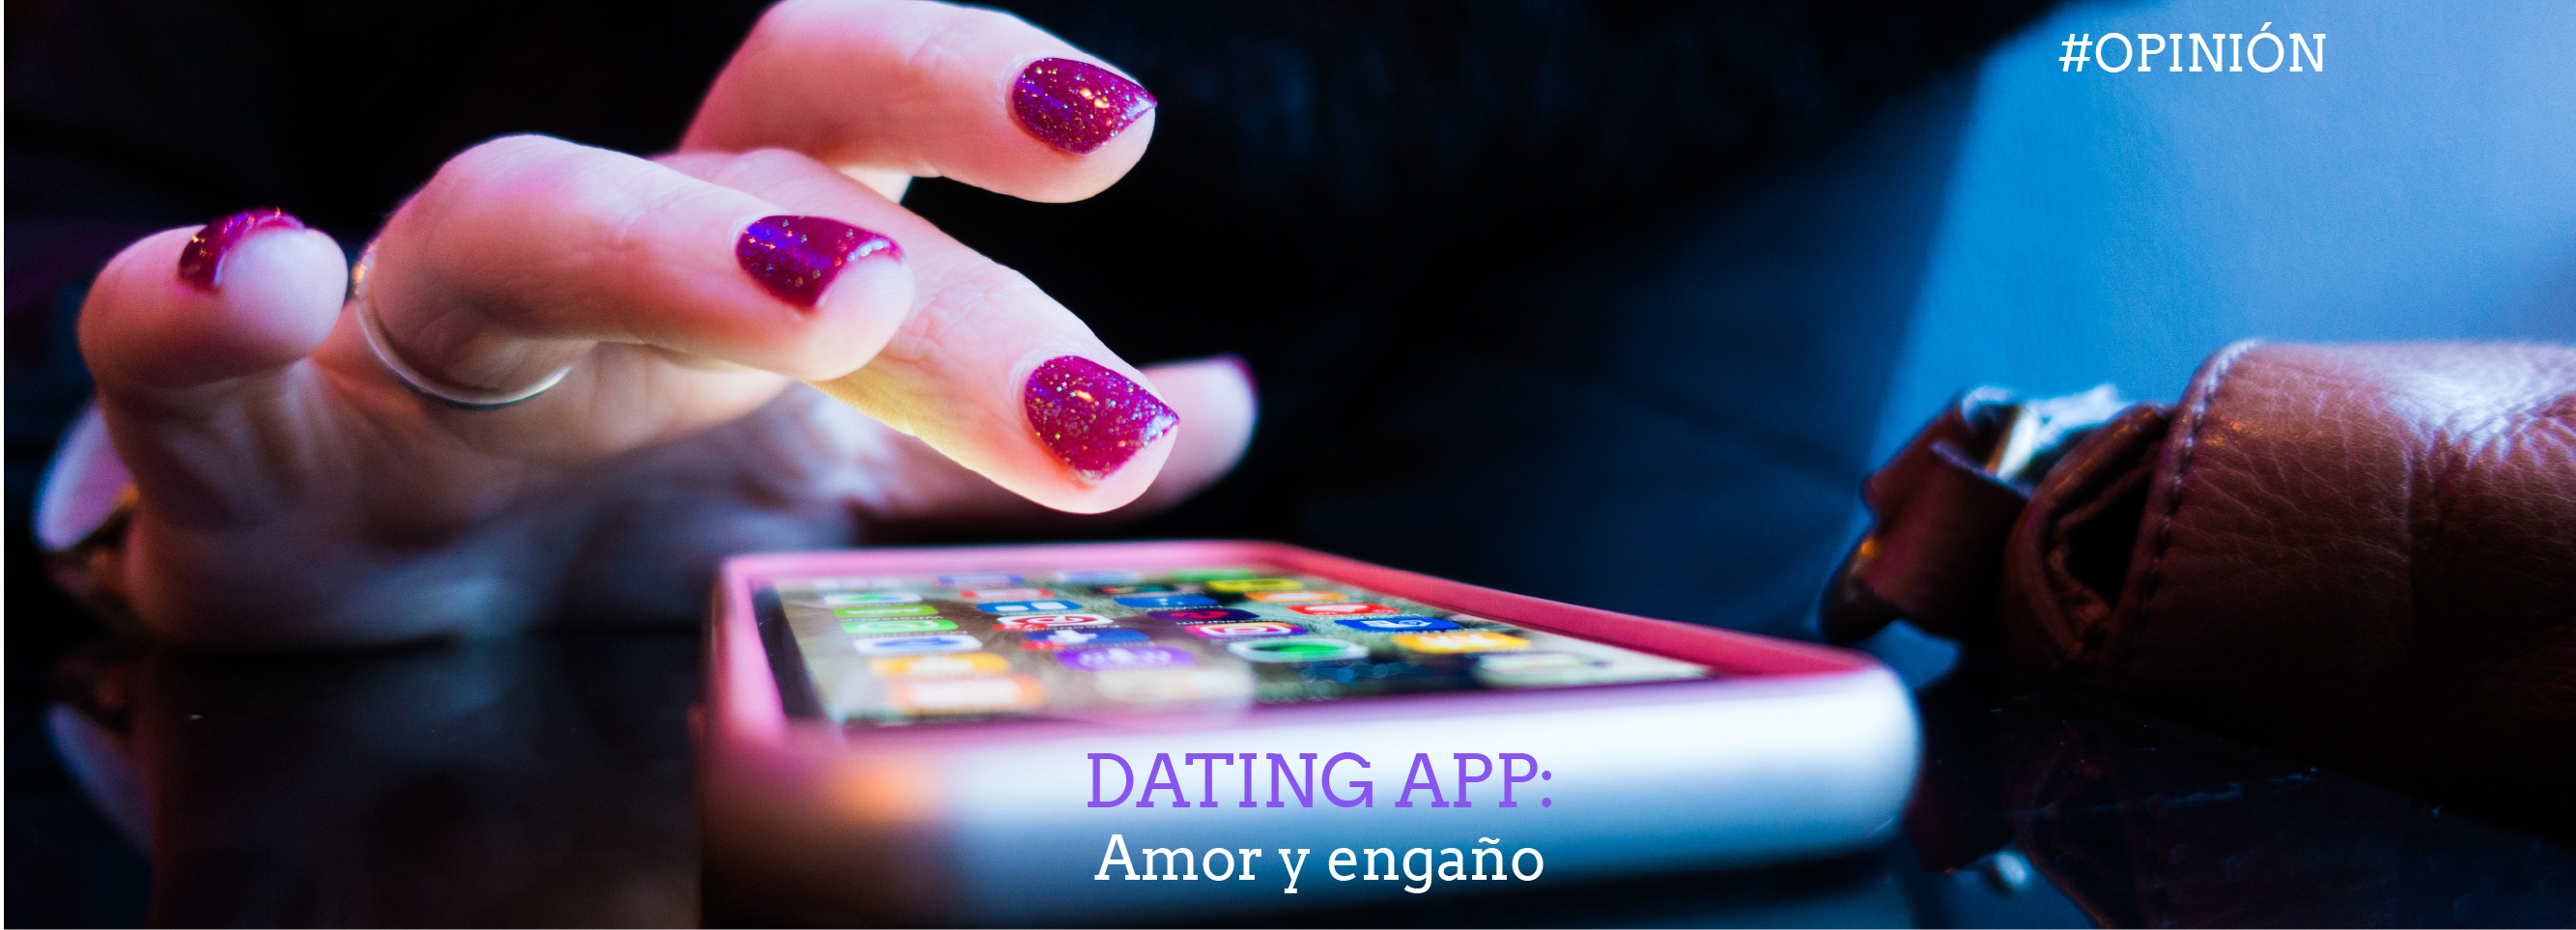 Dating App: Amor y engaño